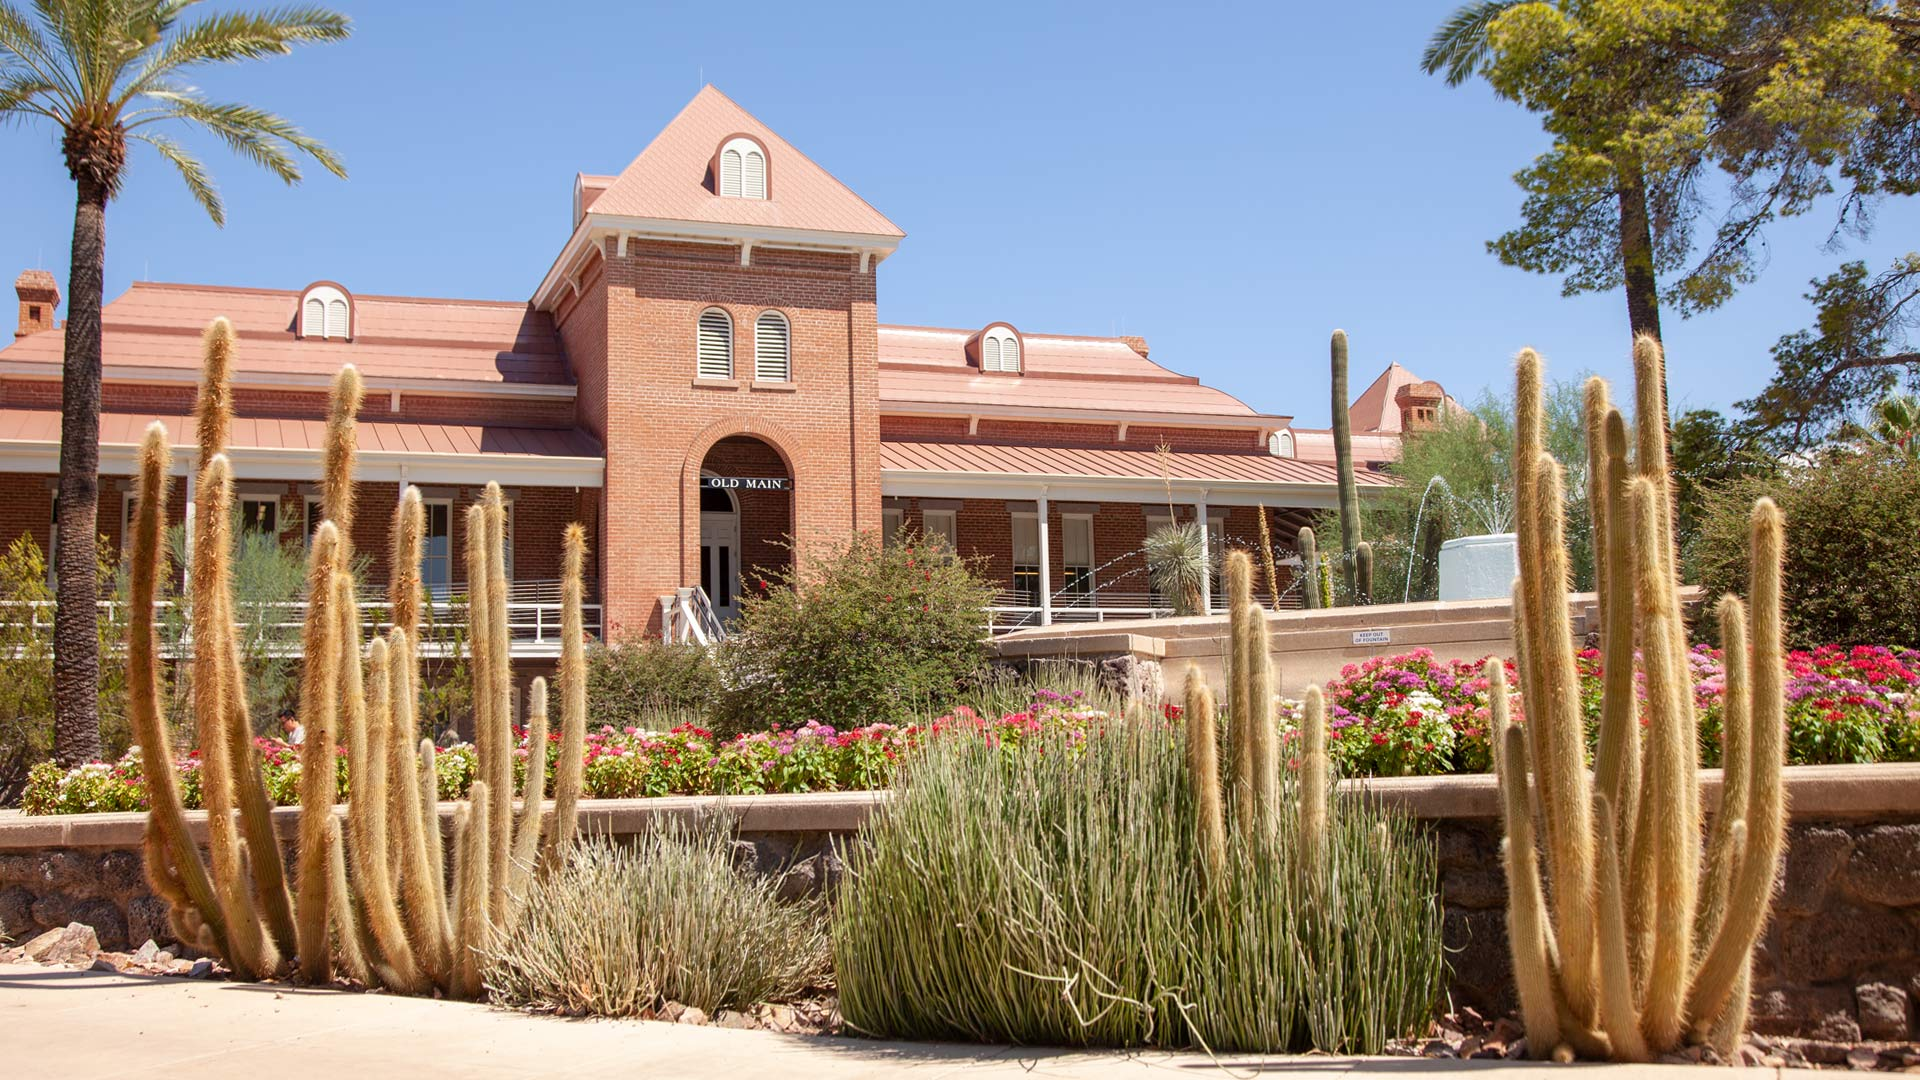 Old Main on the campus of the University of Arizona, August 2019.